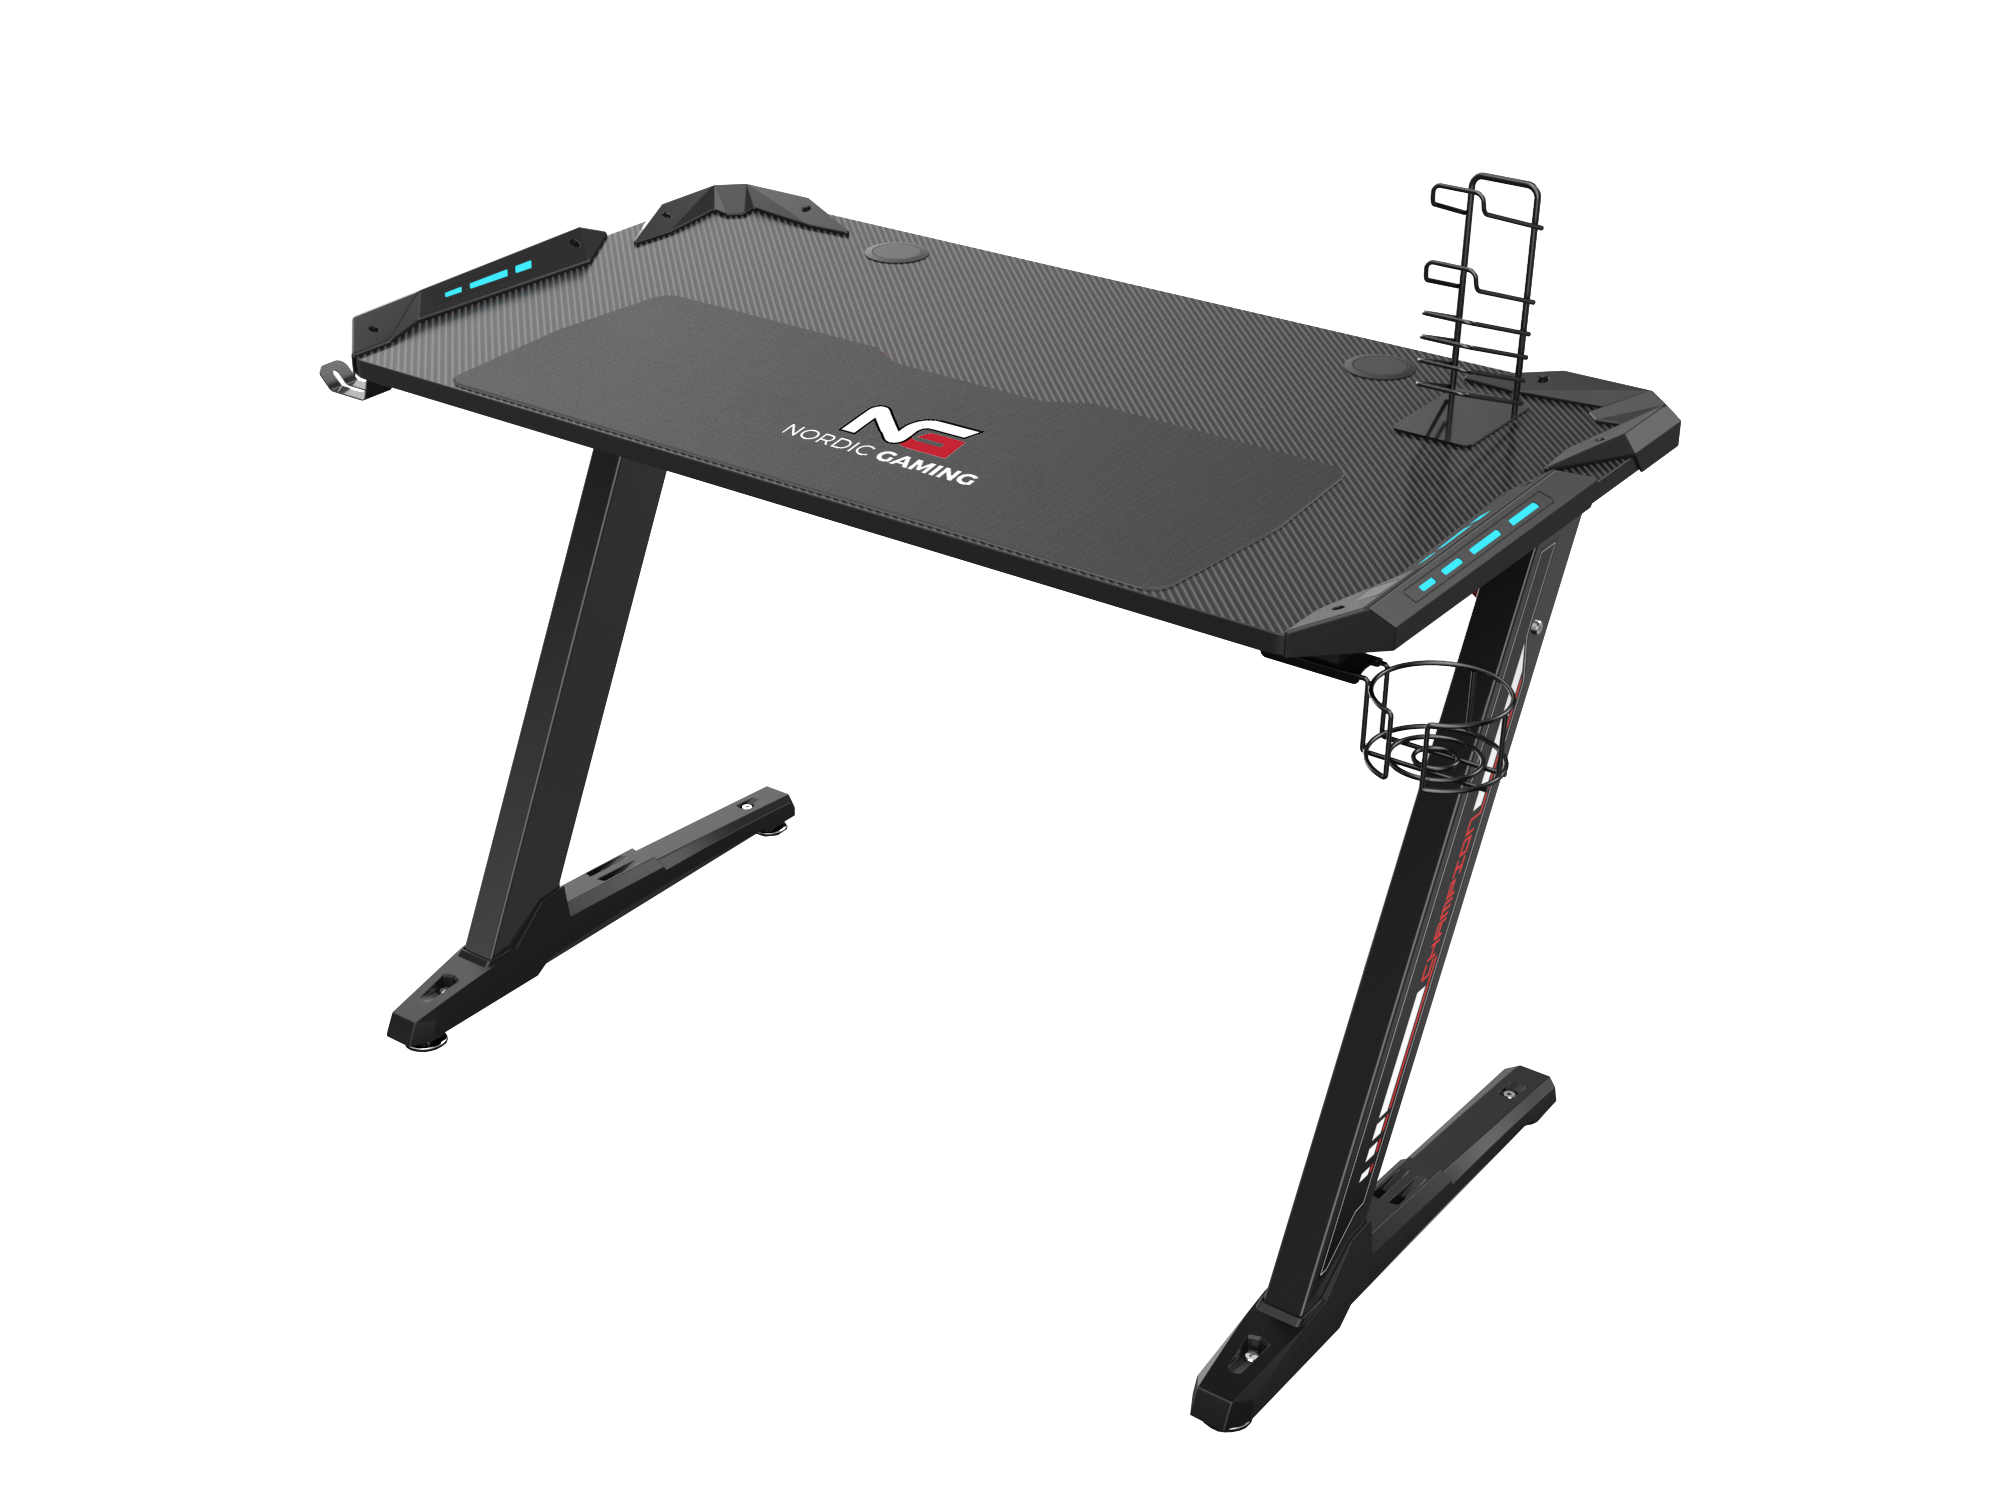 Nordic Gaming bord Z1S Desk